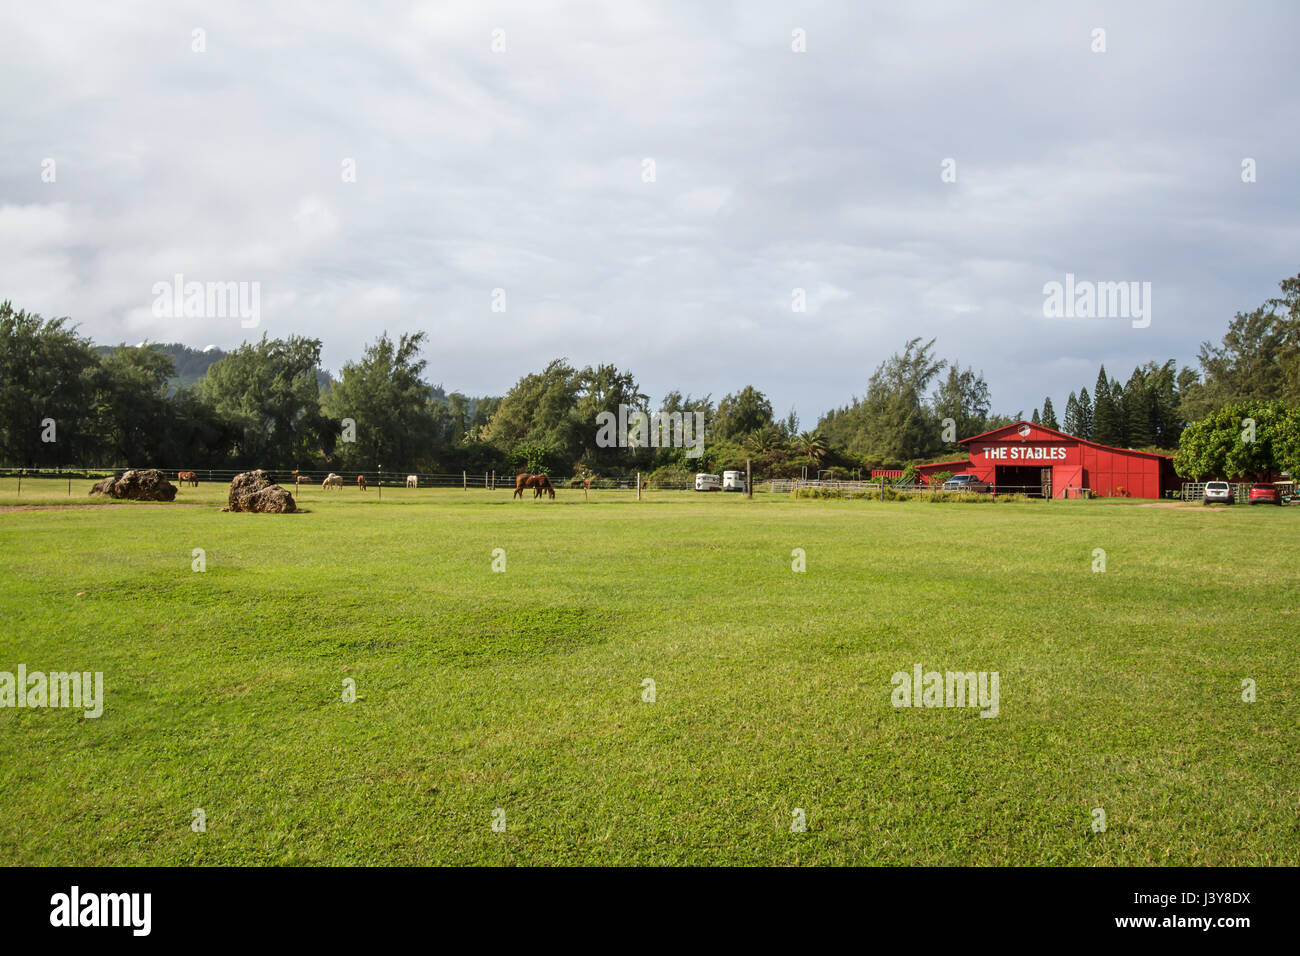 Kahuku, Hawaii Nov. 17 2015: View of the stables located at Turtle Bay resort on the north shore of Oahu Hawaii - Stock Image